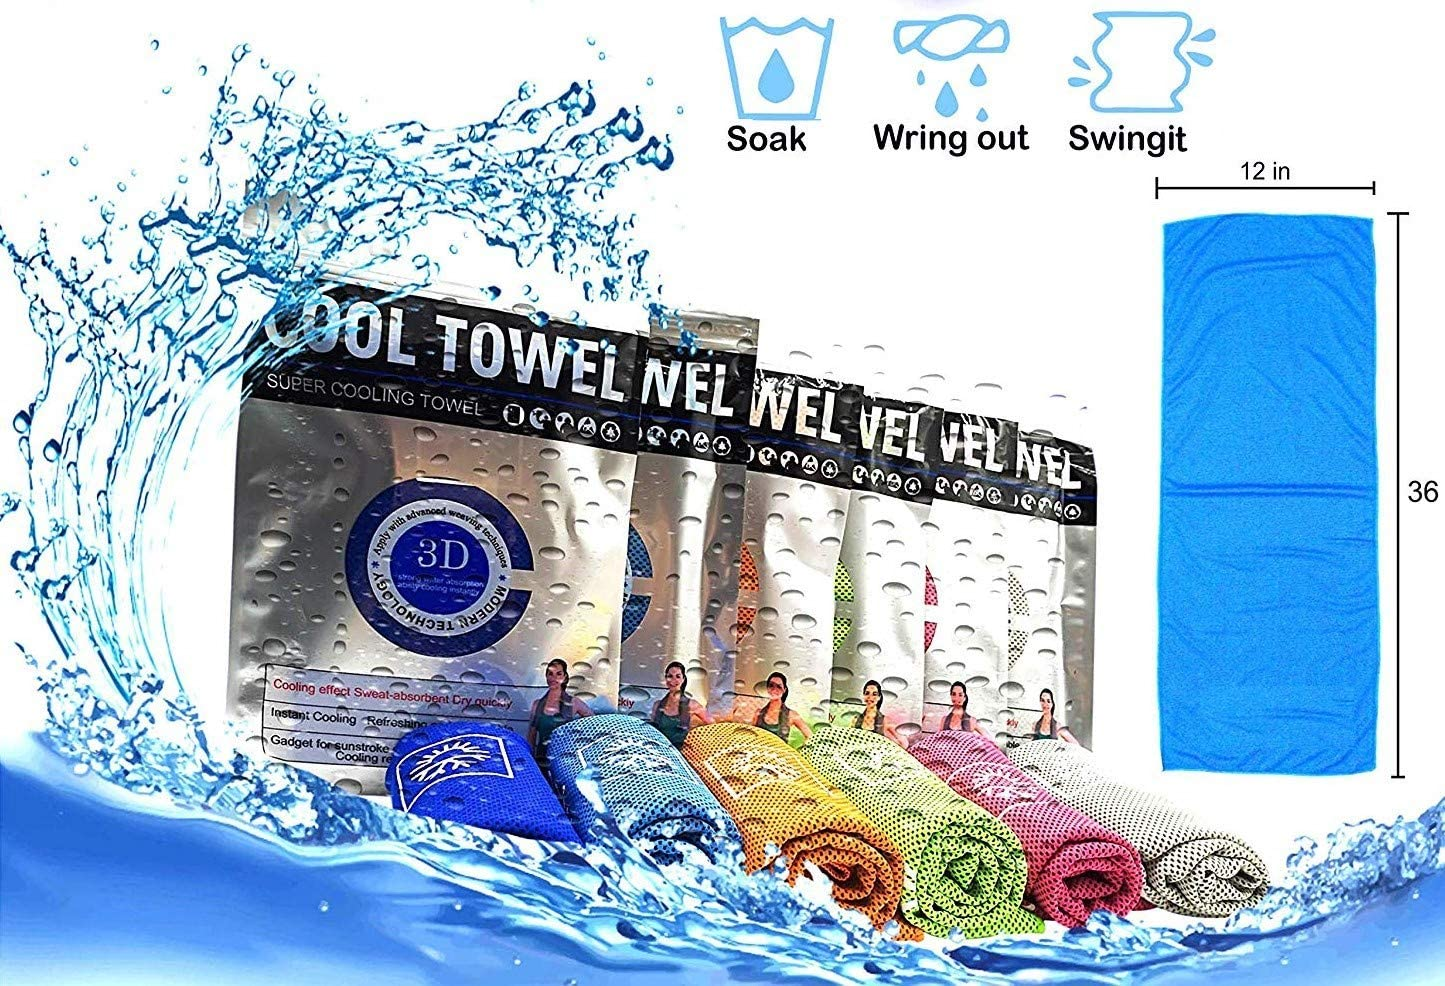 Super Cooling Towel Microfiber Towel Fast Drying - Super Absorbent - Ultra Compact Cooling Towel for Sports, Workout, Fitness, Gym, Yoga, Pilates, Travel, Camping (Large, Light Blue)